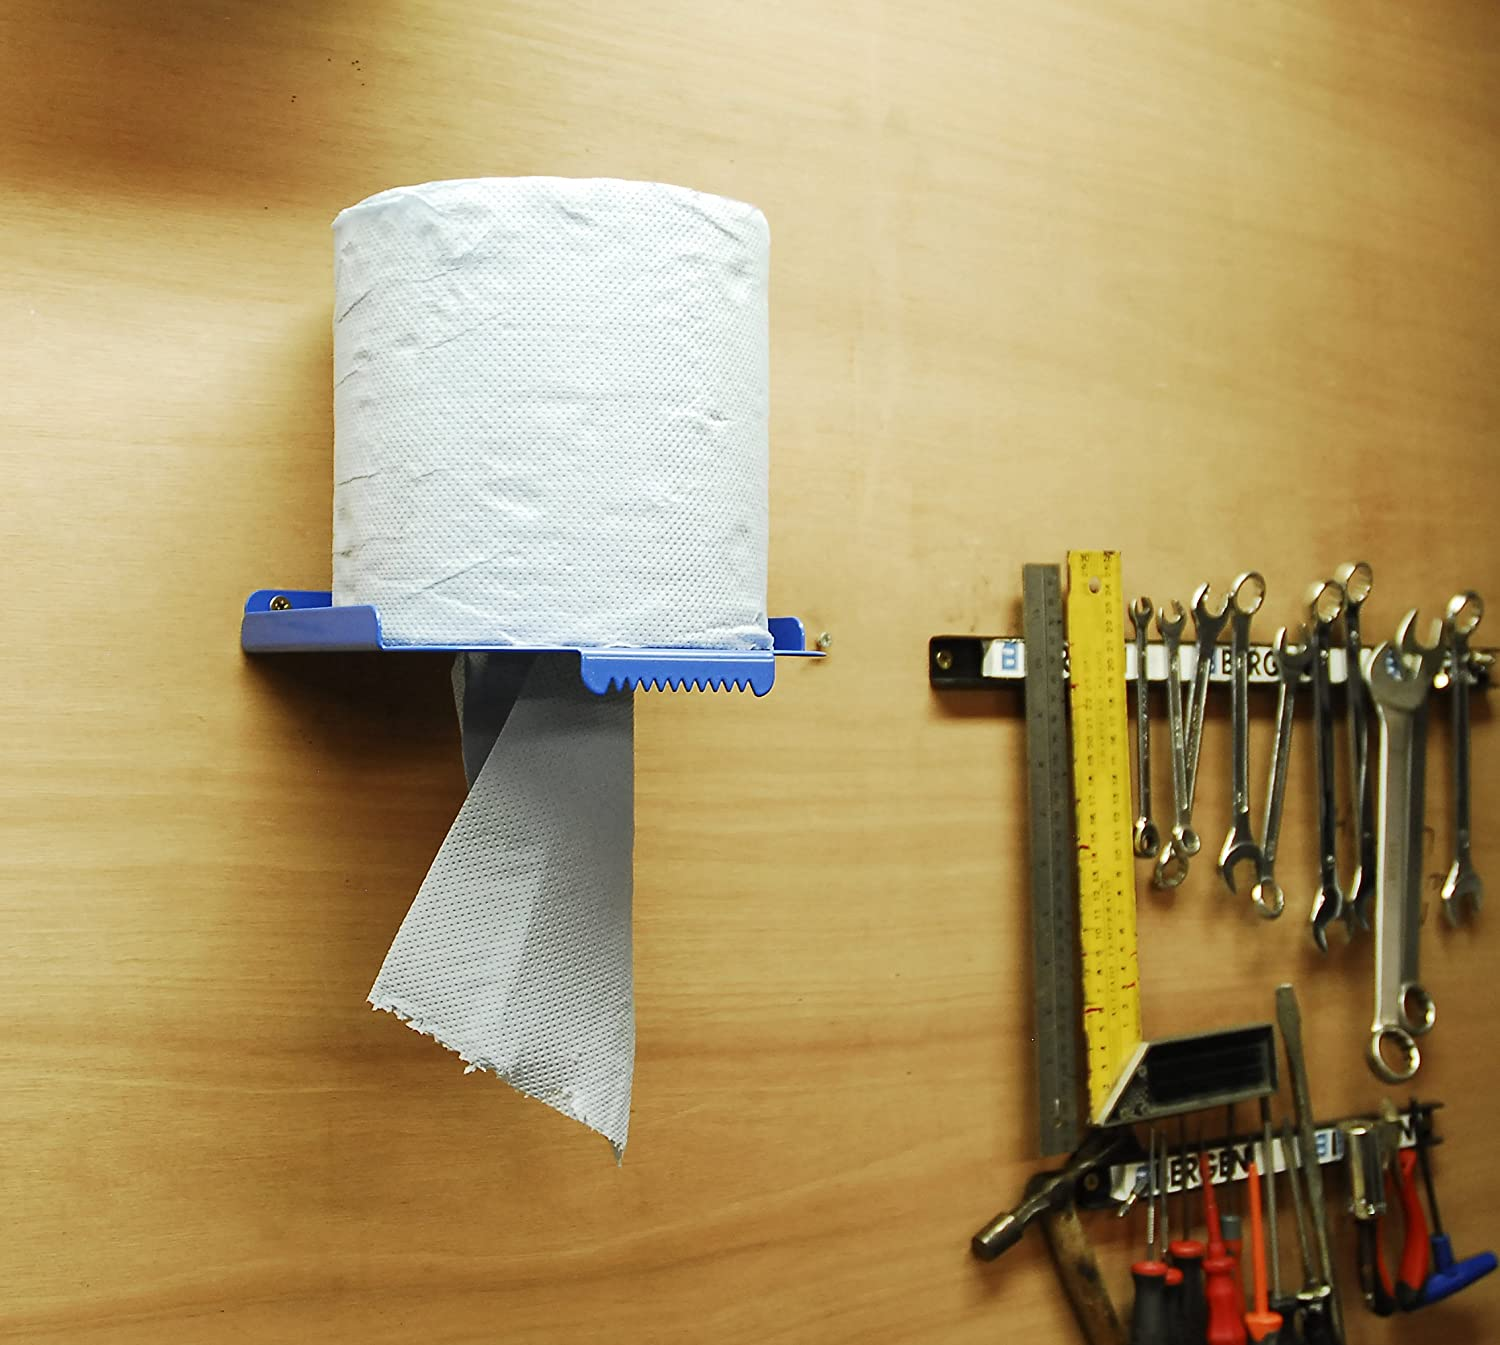 Centrefeed Blue Roll Wall Mounted Dispenser Stand Paper Towel Tissue Holder JBI